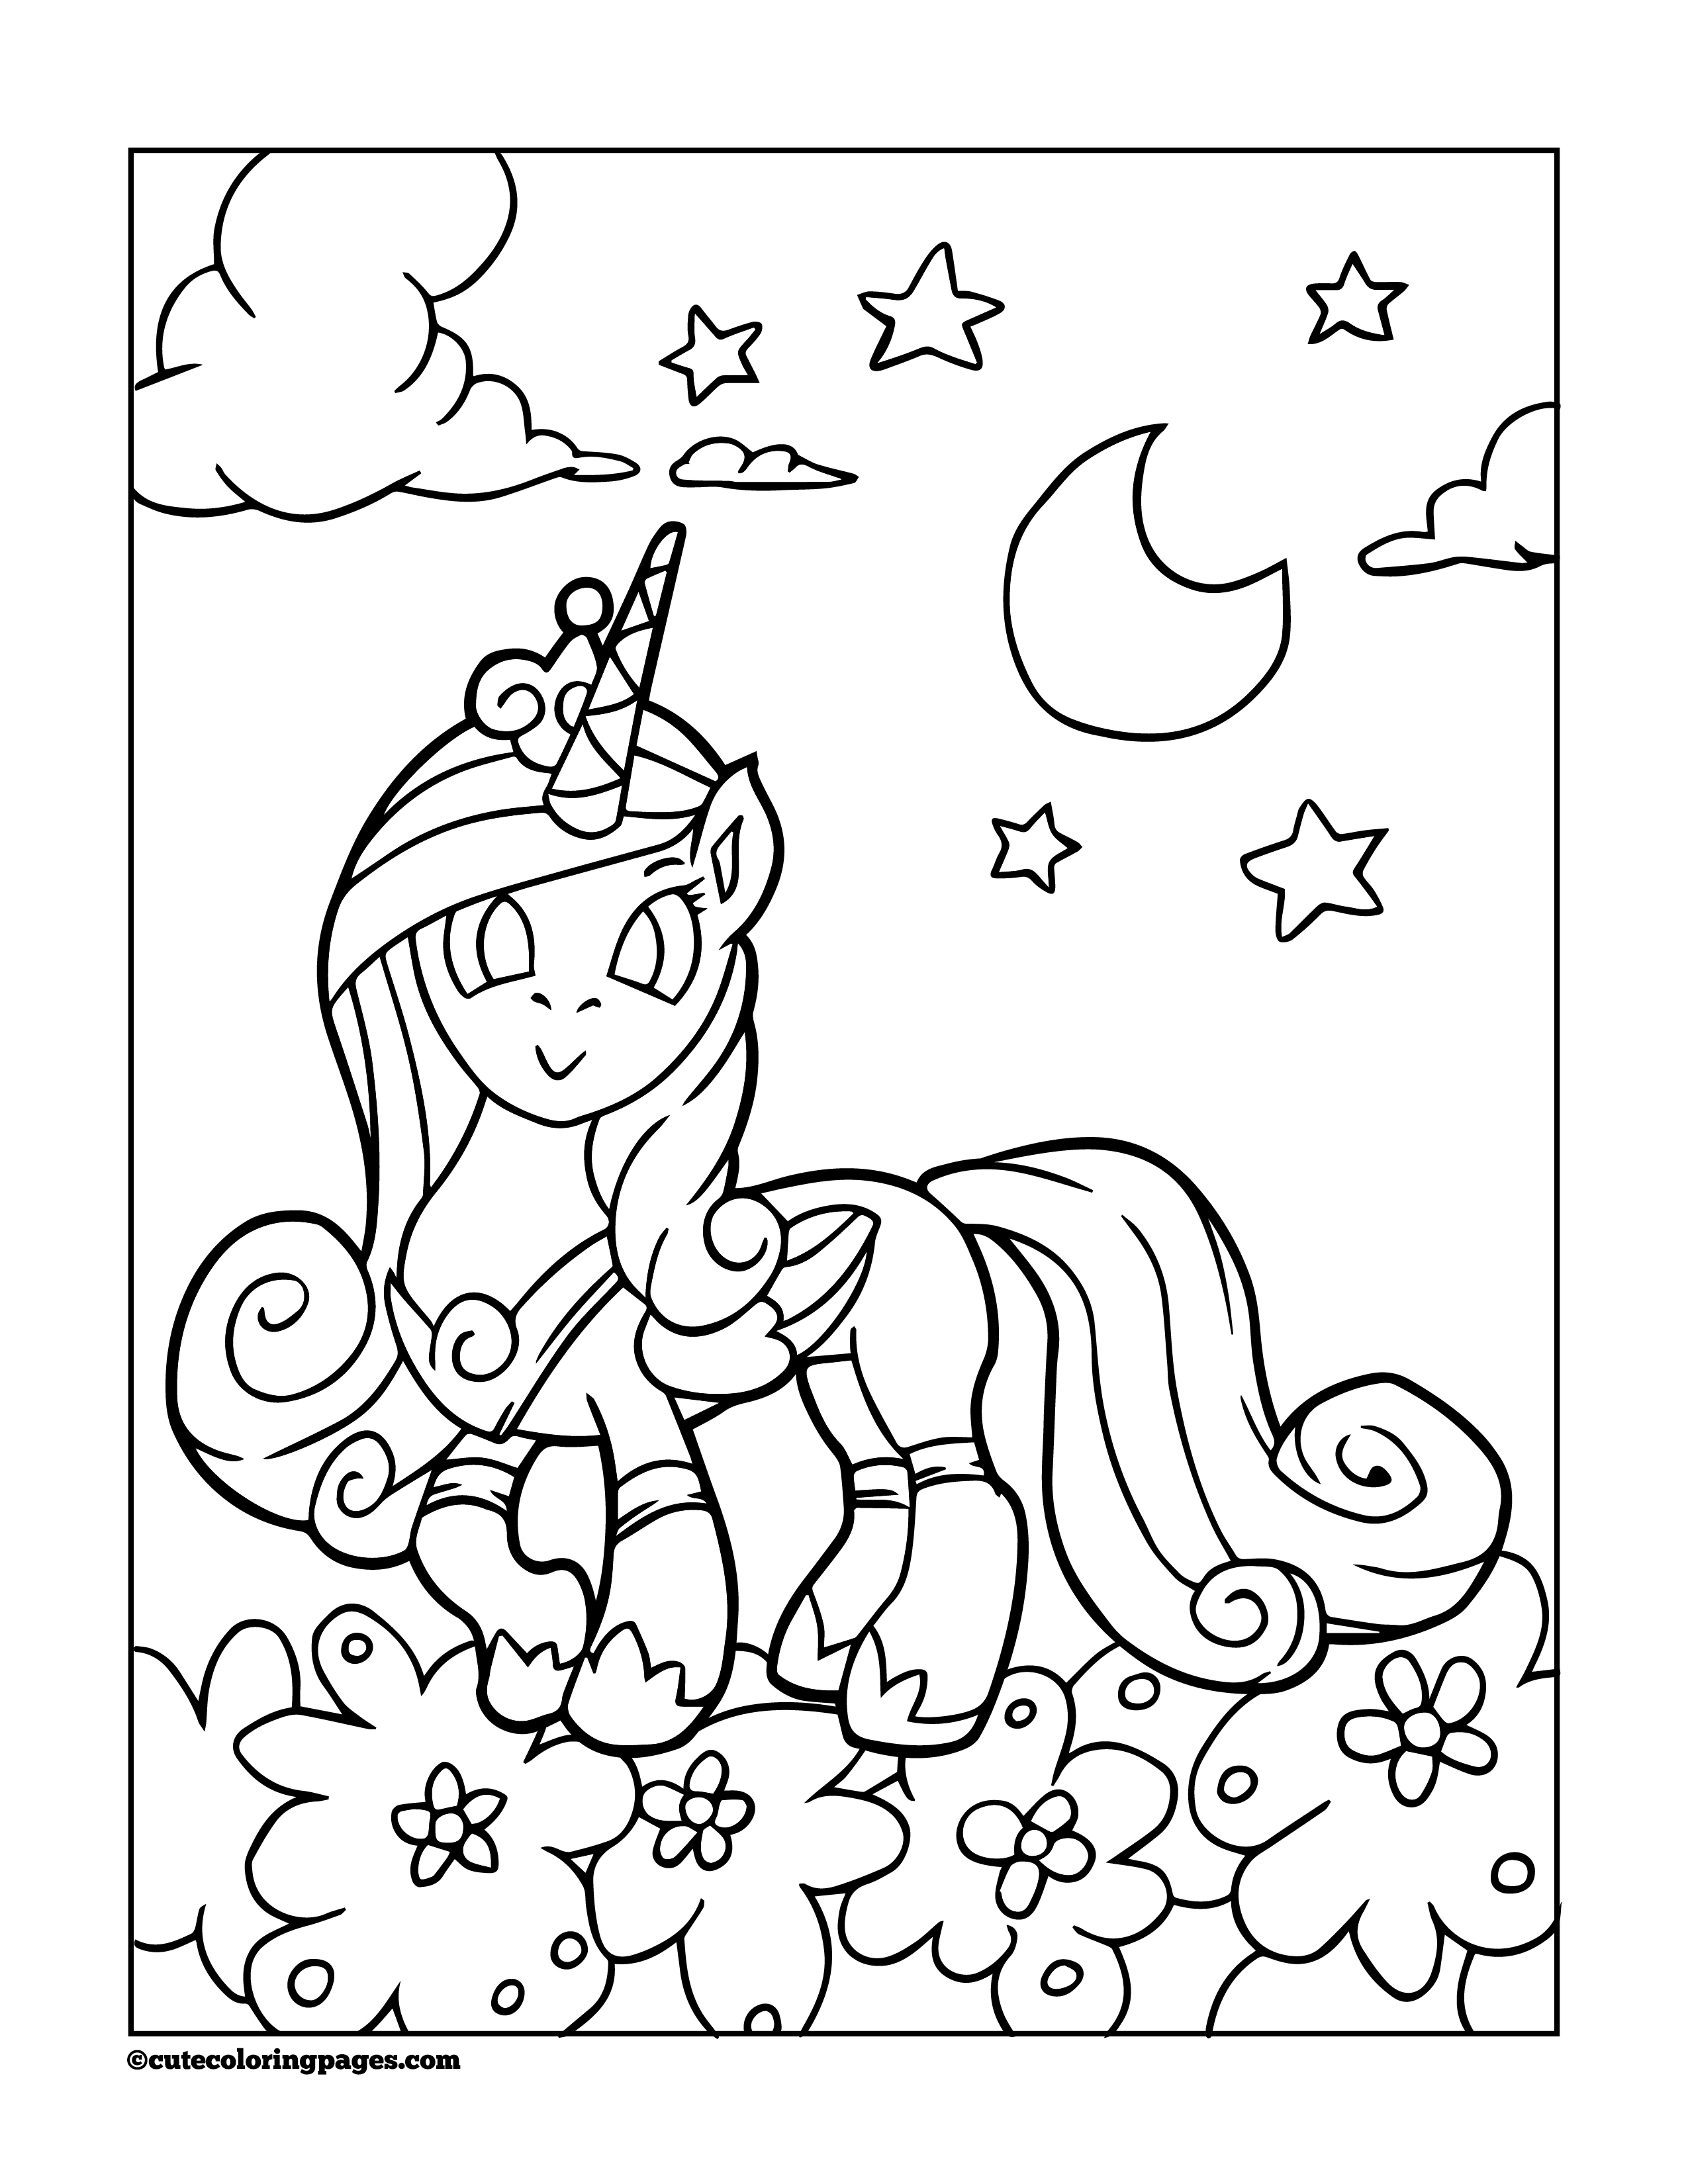 unicorn coloring videos unicorn coloring pages coloring videos unicorn